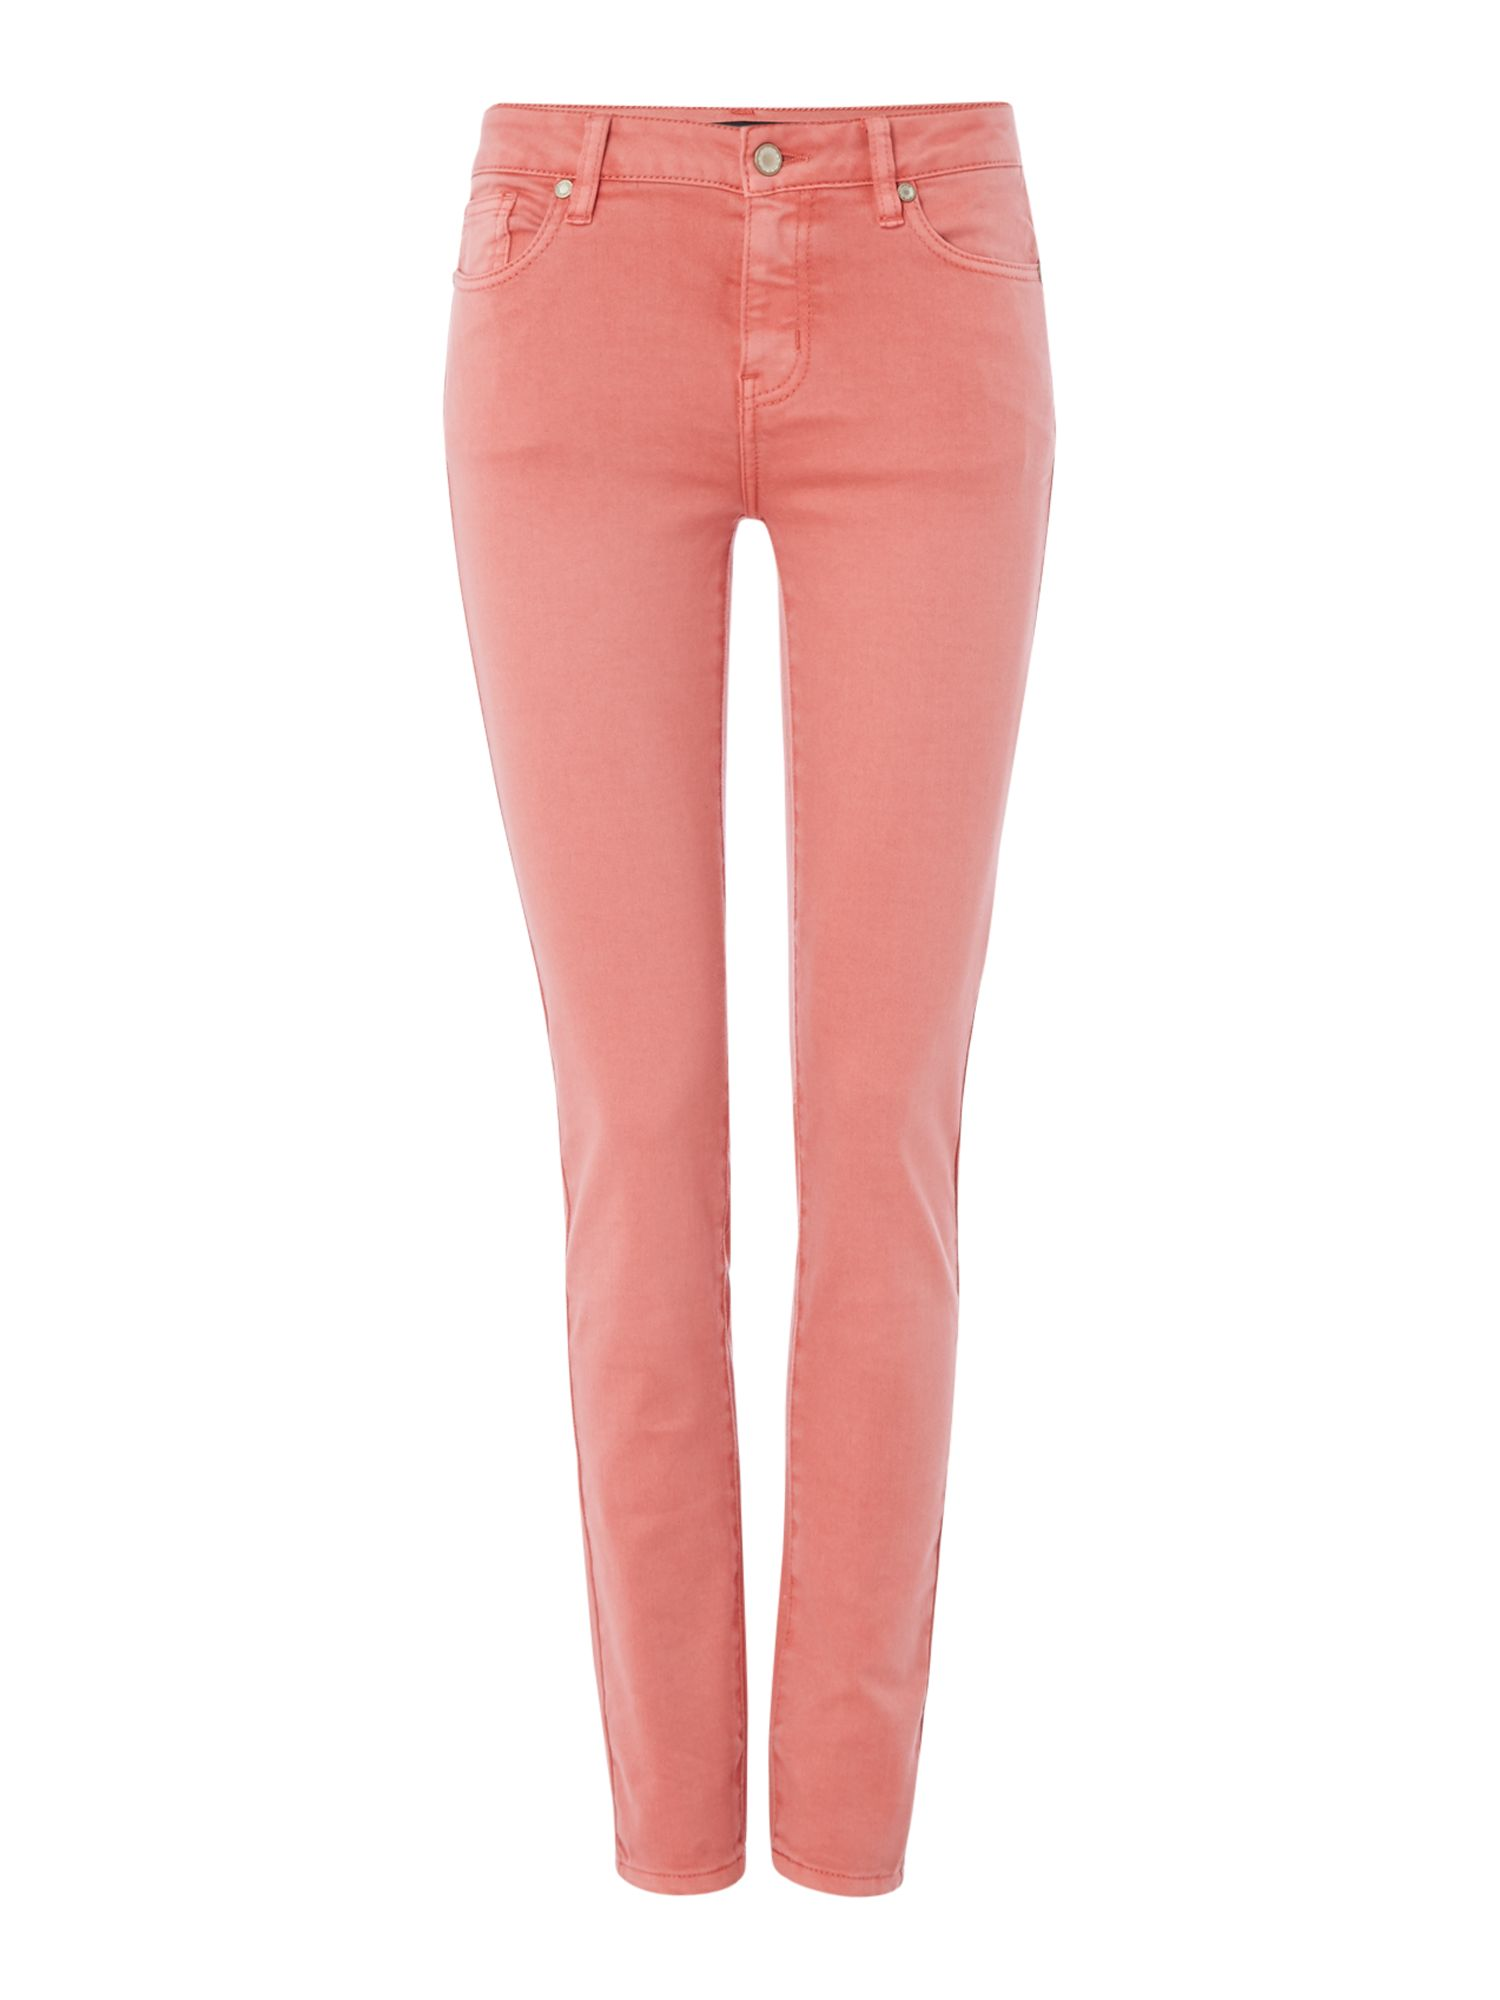 Repeat Cashmere Skinny jeans, Coral